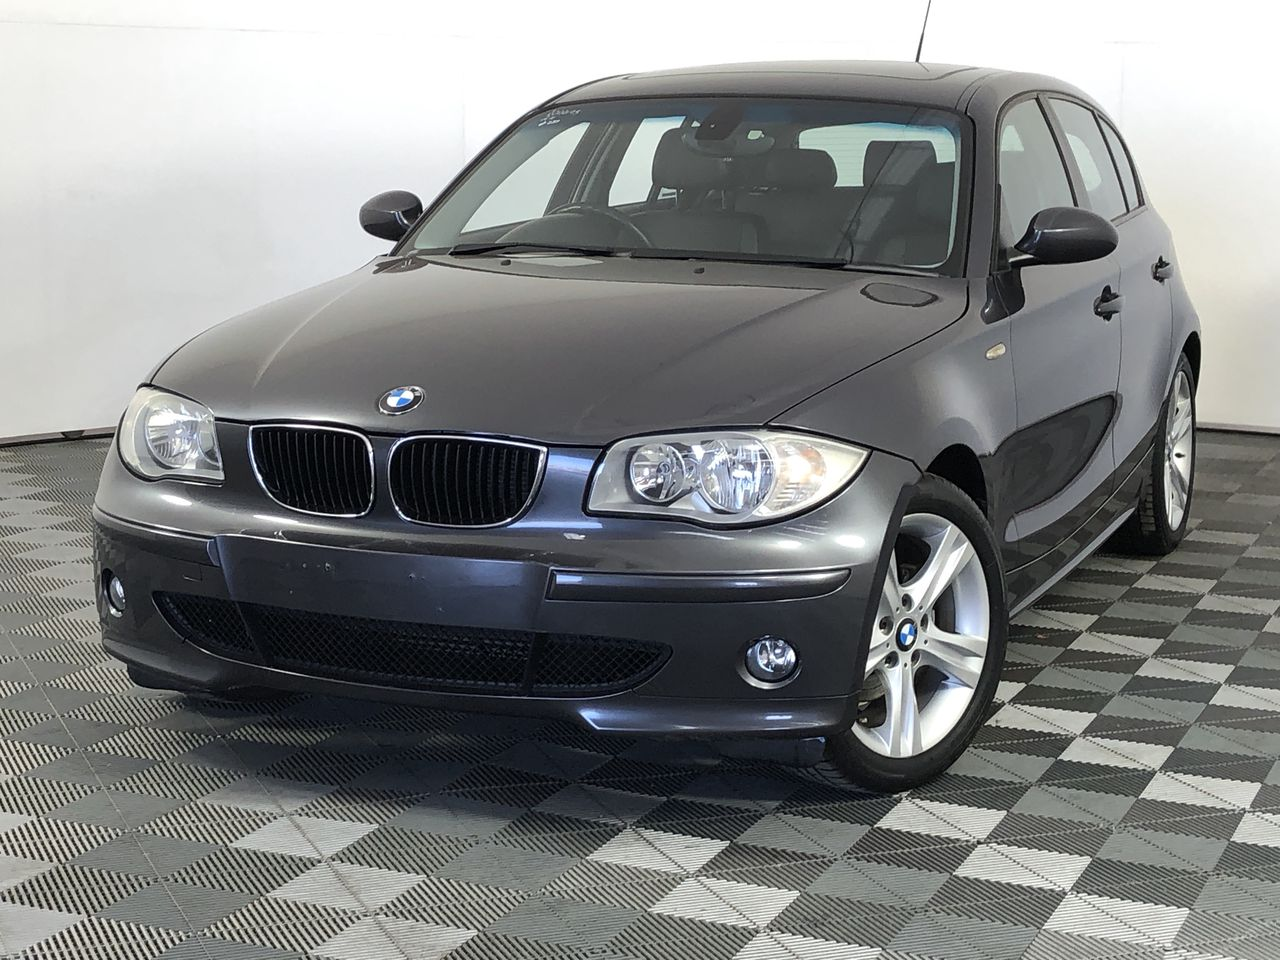 2006 BMW 1 20d E87 Turbo Diesel Automatic Hatchback